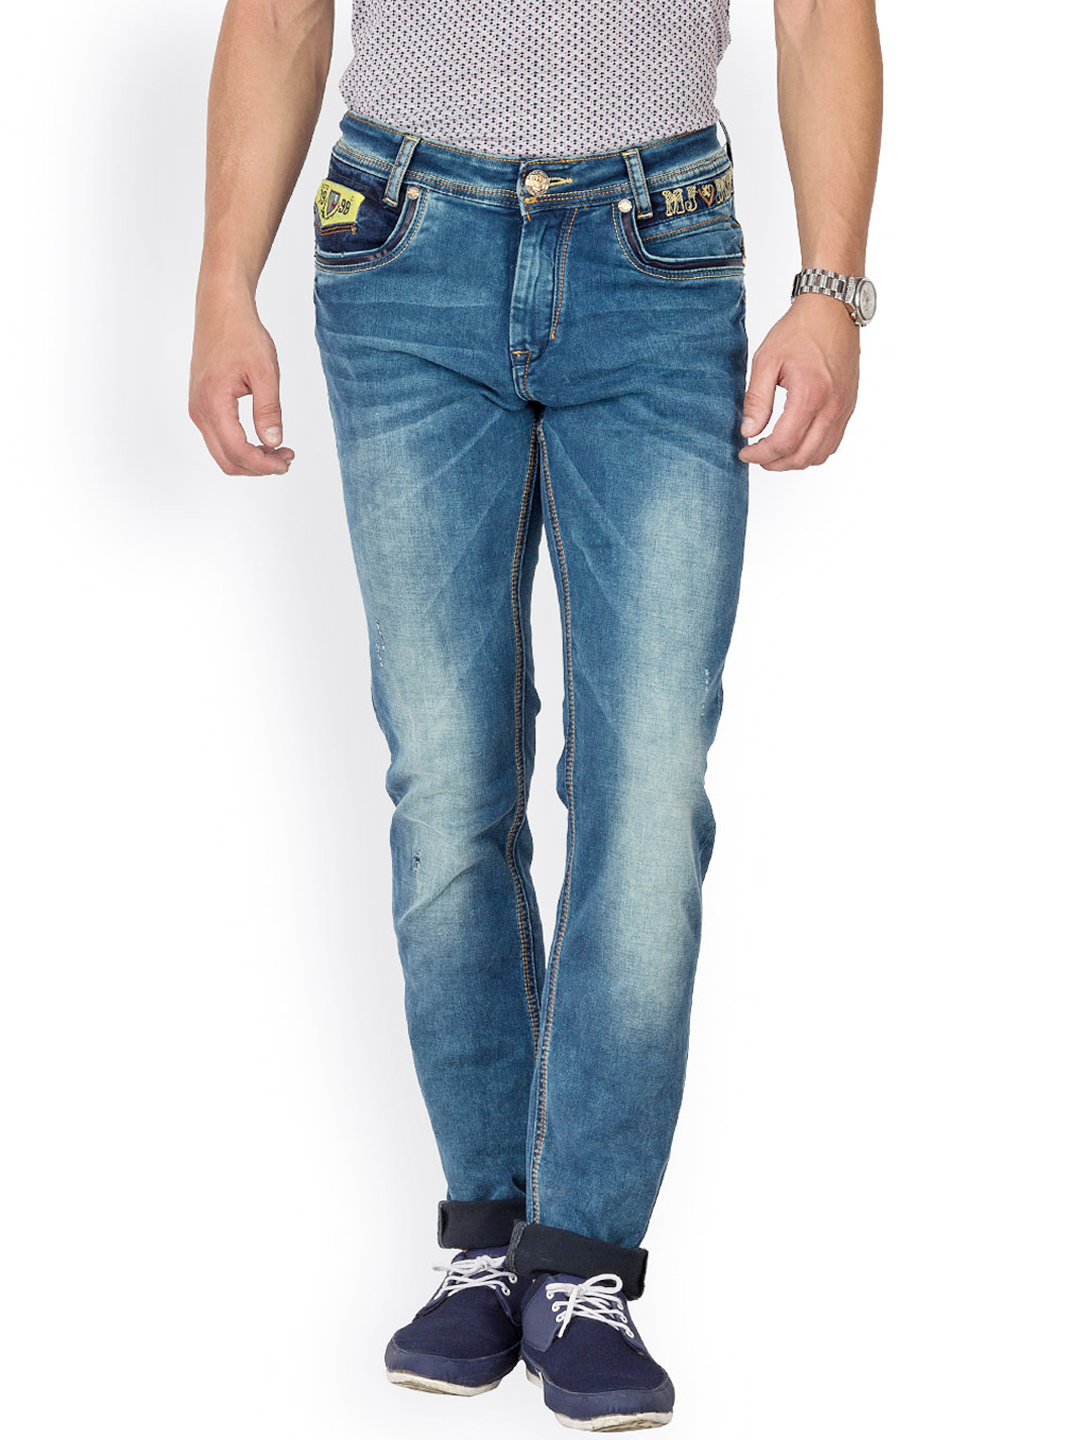 Myntra Mufti Men Blue Jeans 749923 | Buy Myntra Mufti Jeans at best price online. All myntra ...